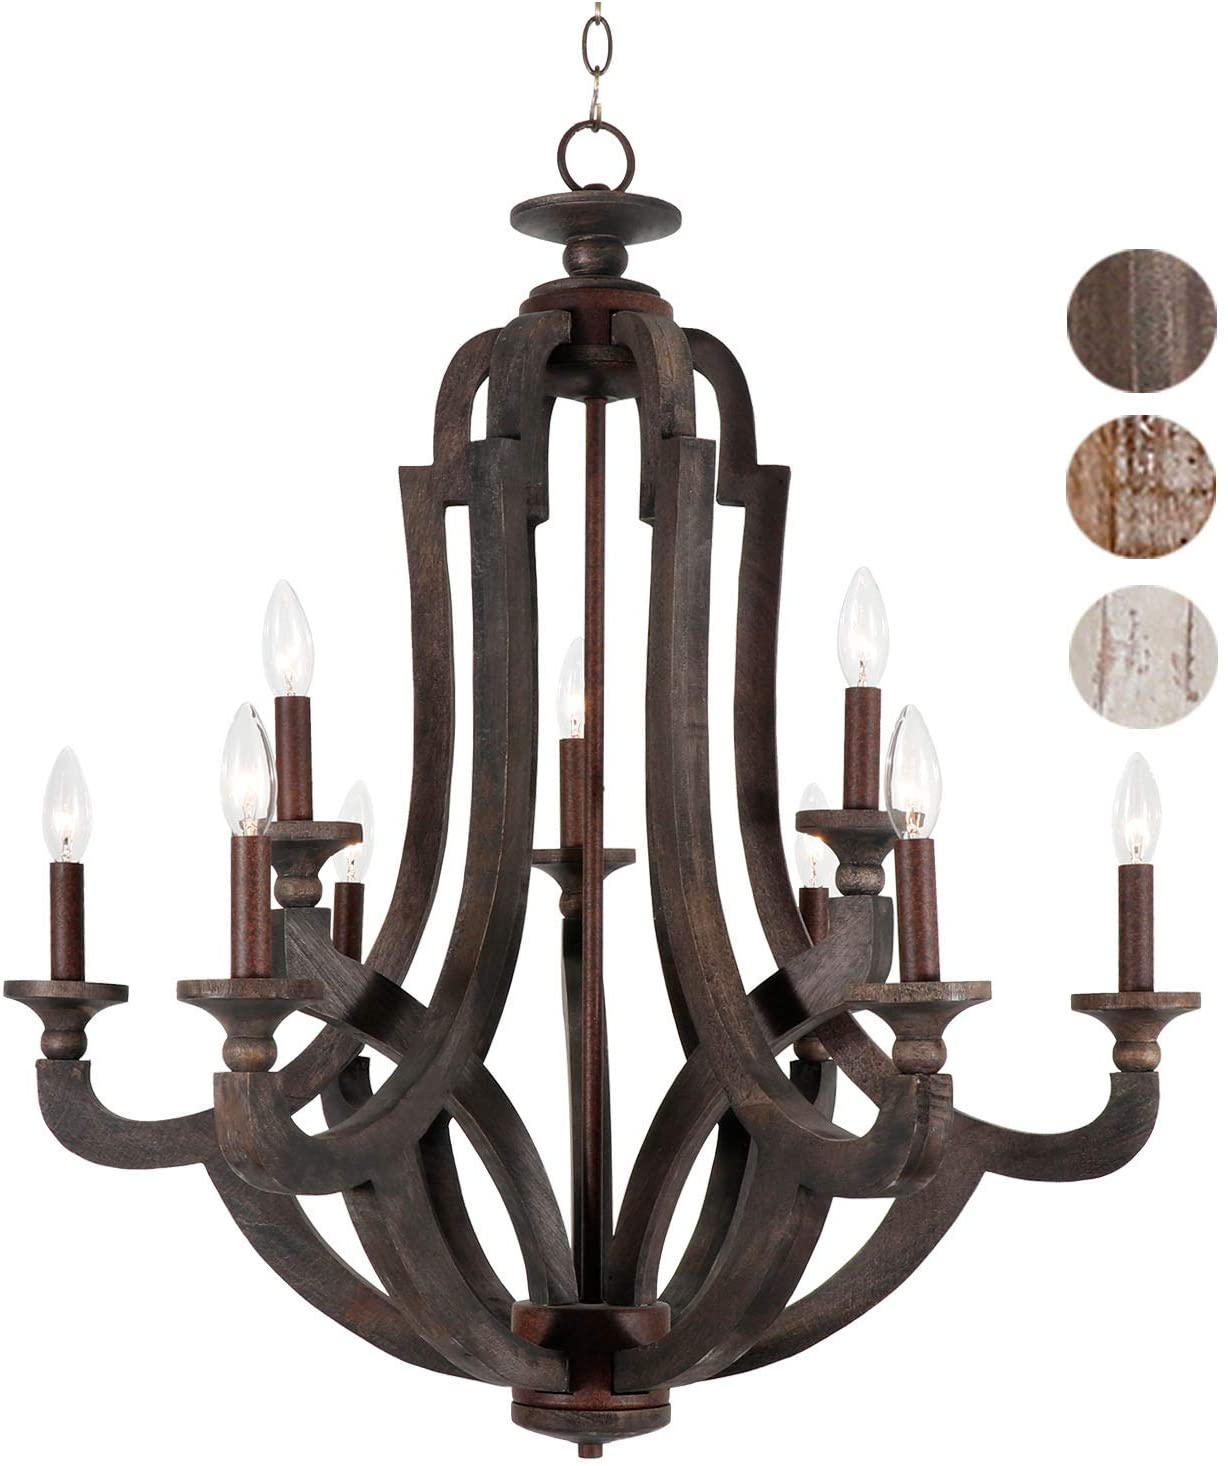 Springzouk 9 Light Wooden Chandelier,Super Easy Install,Very Classy and Antique Looking - L29.5 xW29.5X H33.2 Inches (Wooden Black)